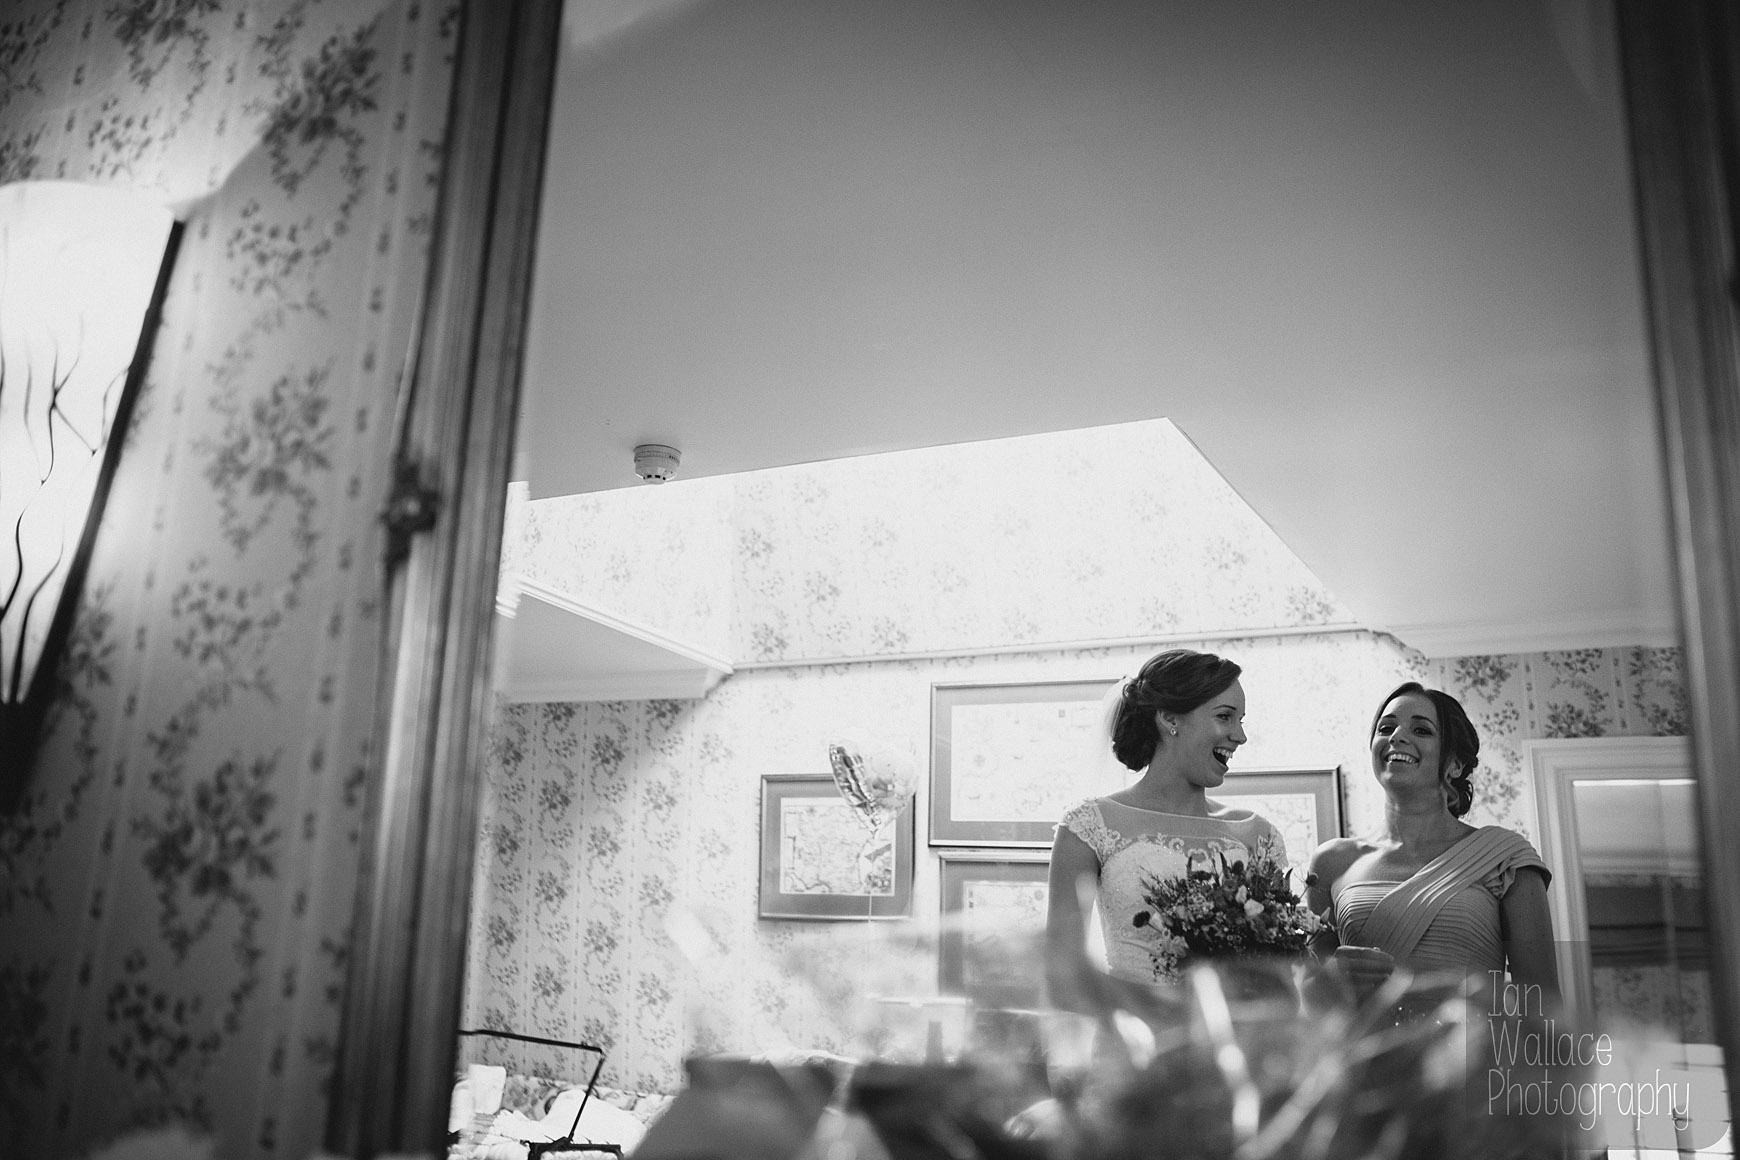 Bride and bridesmaid share a moment, laughing during the final build up